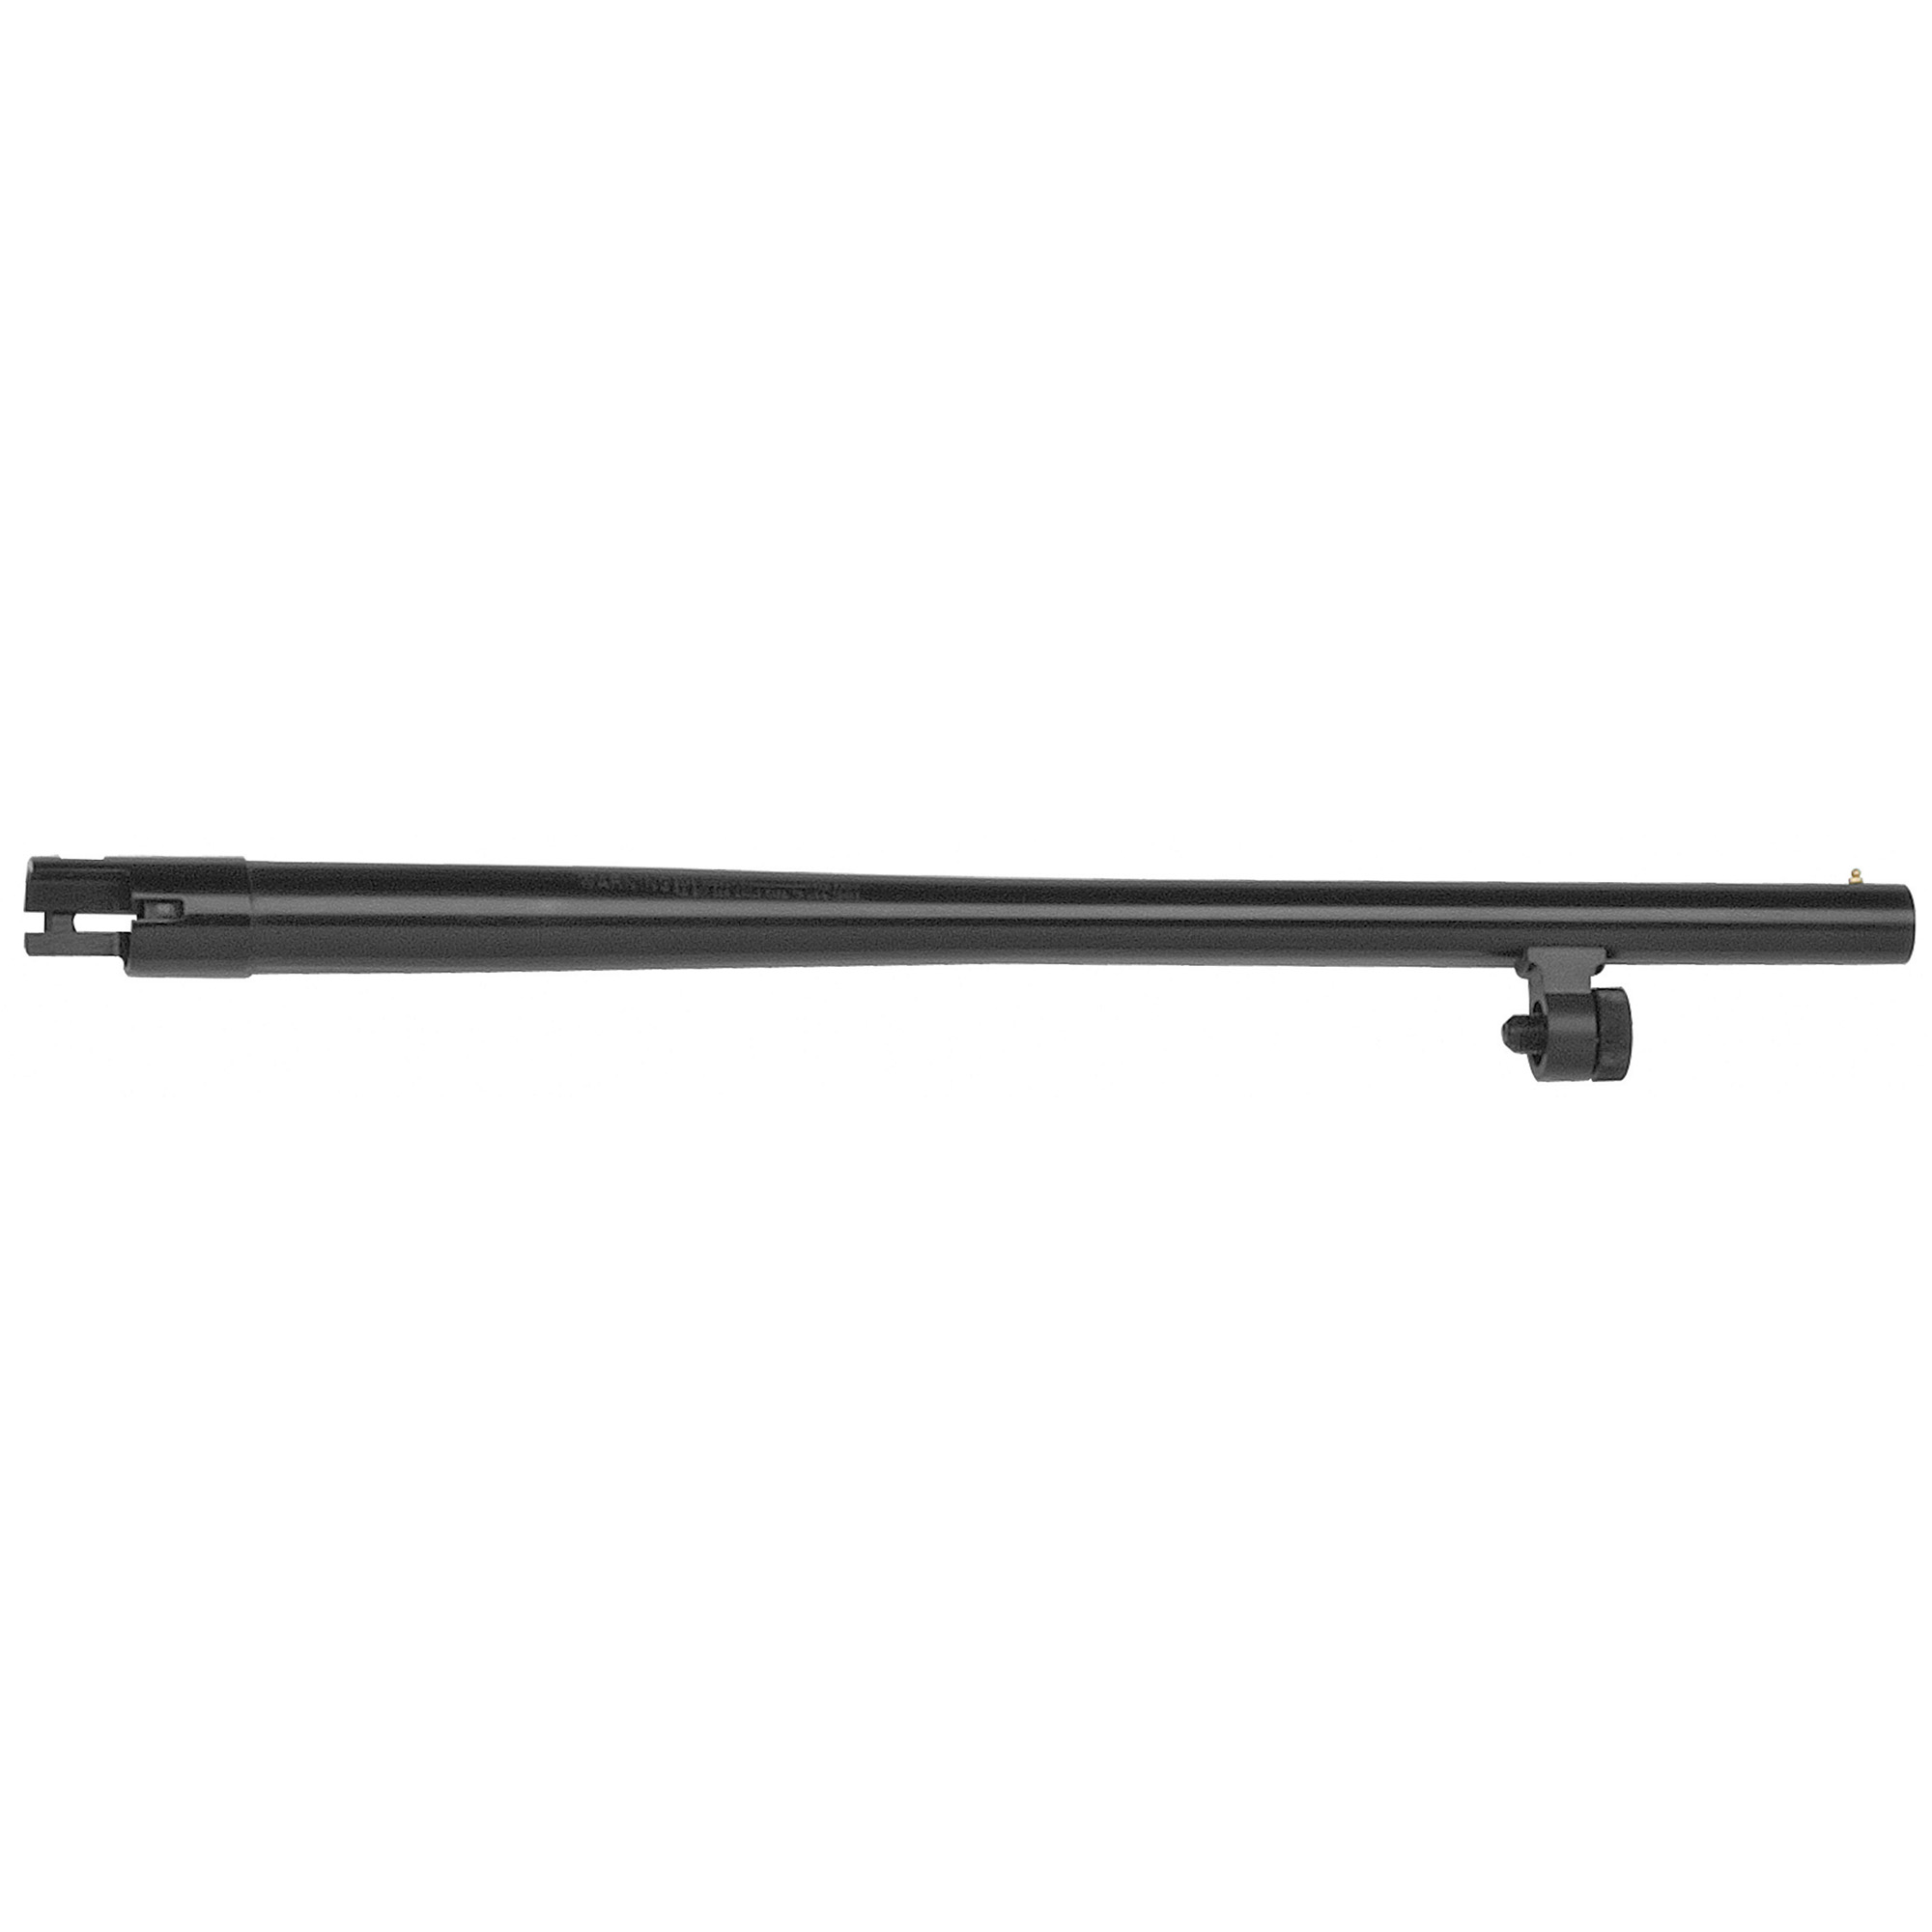 """18.5"""" Security barrel with bead sight"""" cylinder bore"""" and blued finish. Compatible with 12 Gauge Mossberg 500 and Maverick 88 6-shot models"""